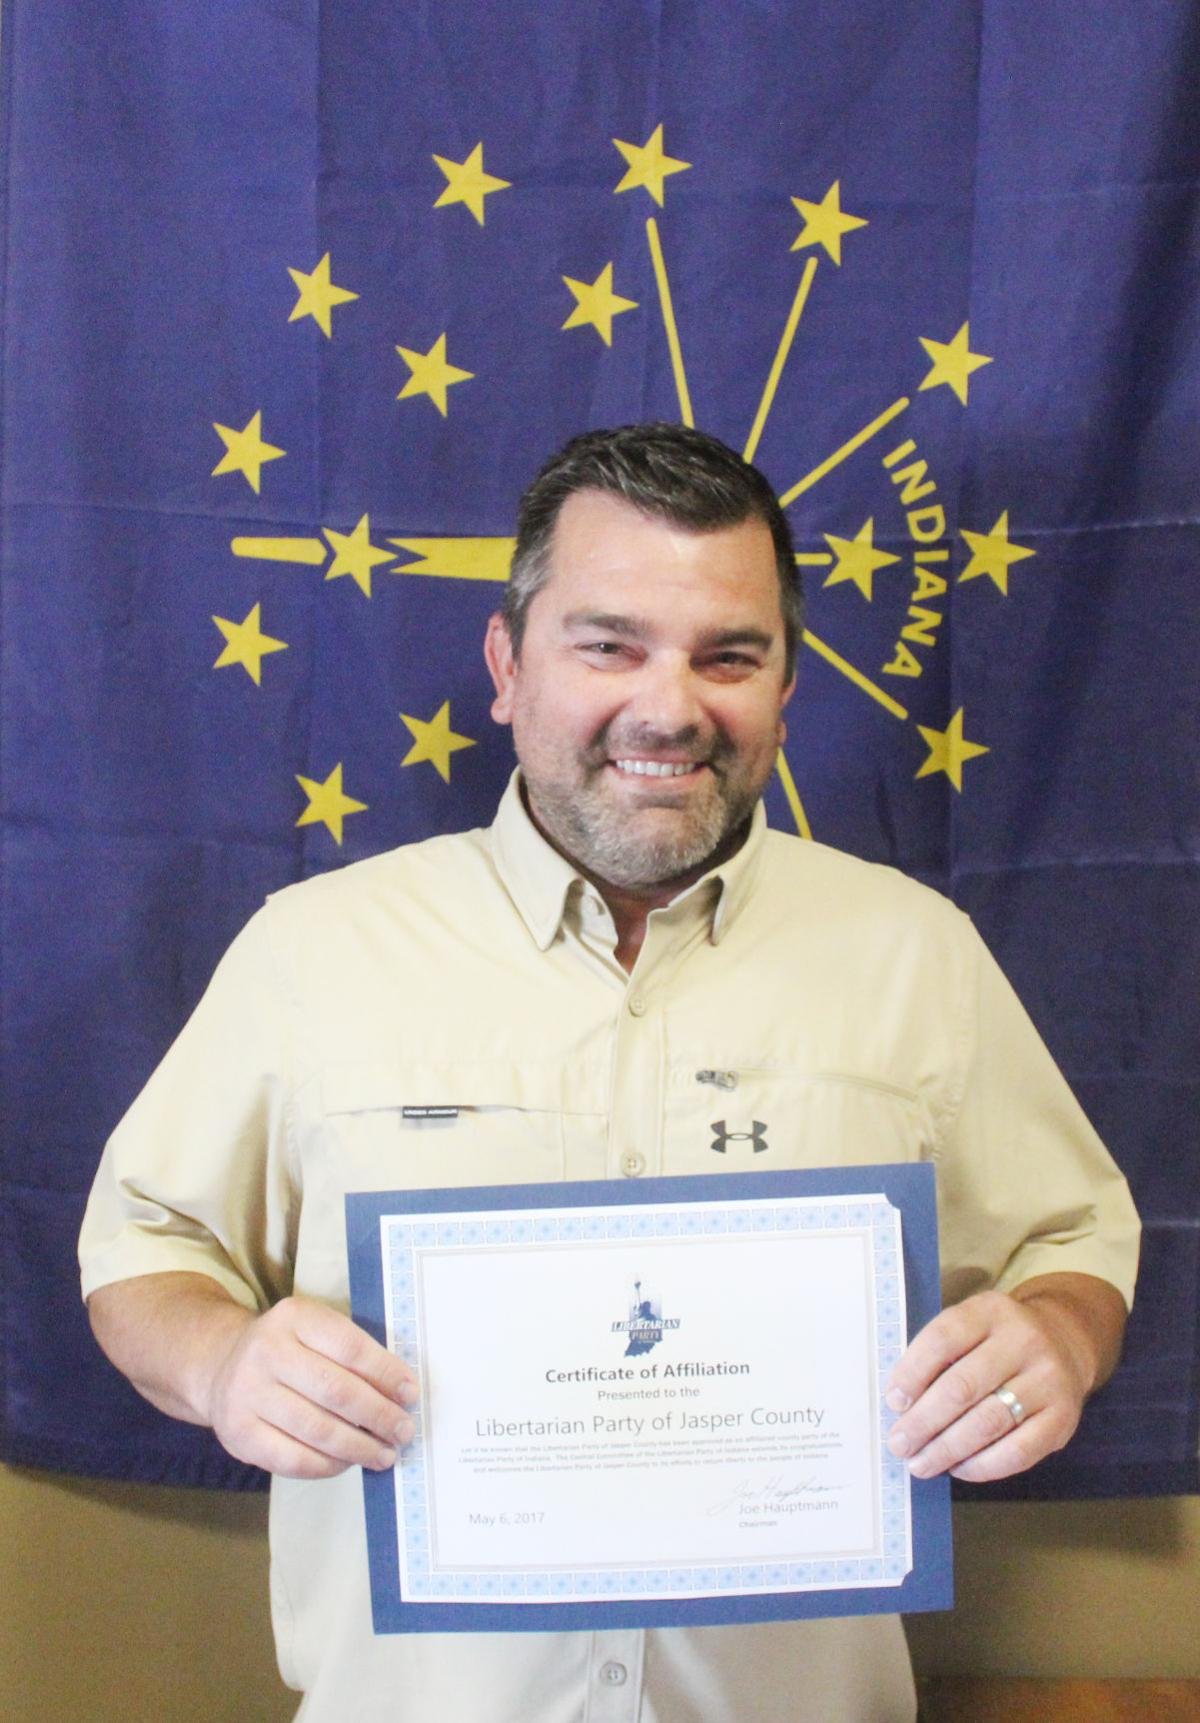 Indiana jasper county tefft - Jasper County Libertarian Party Gains Official Recognition